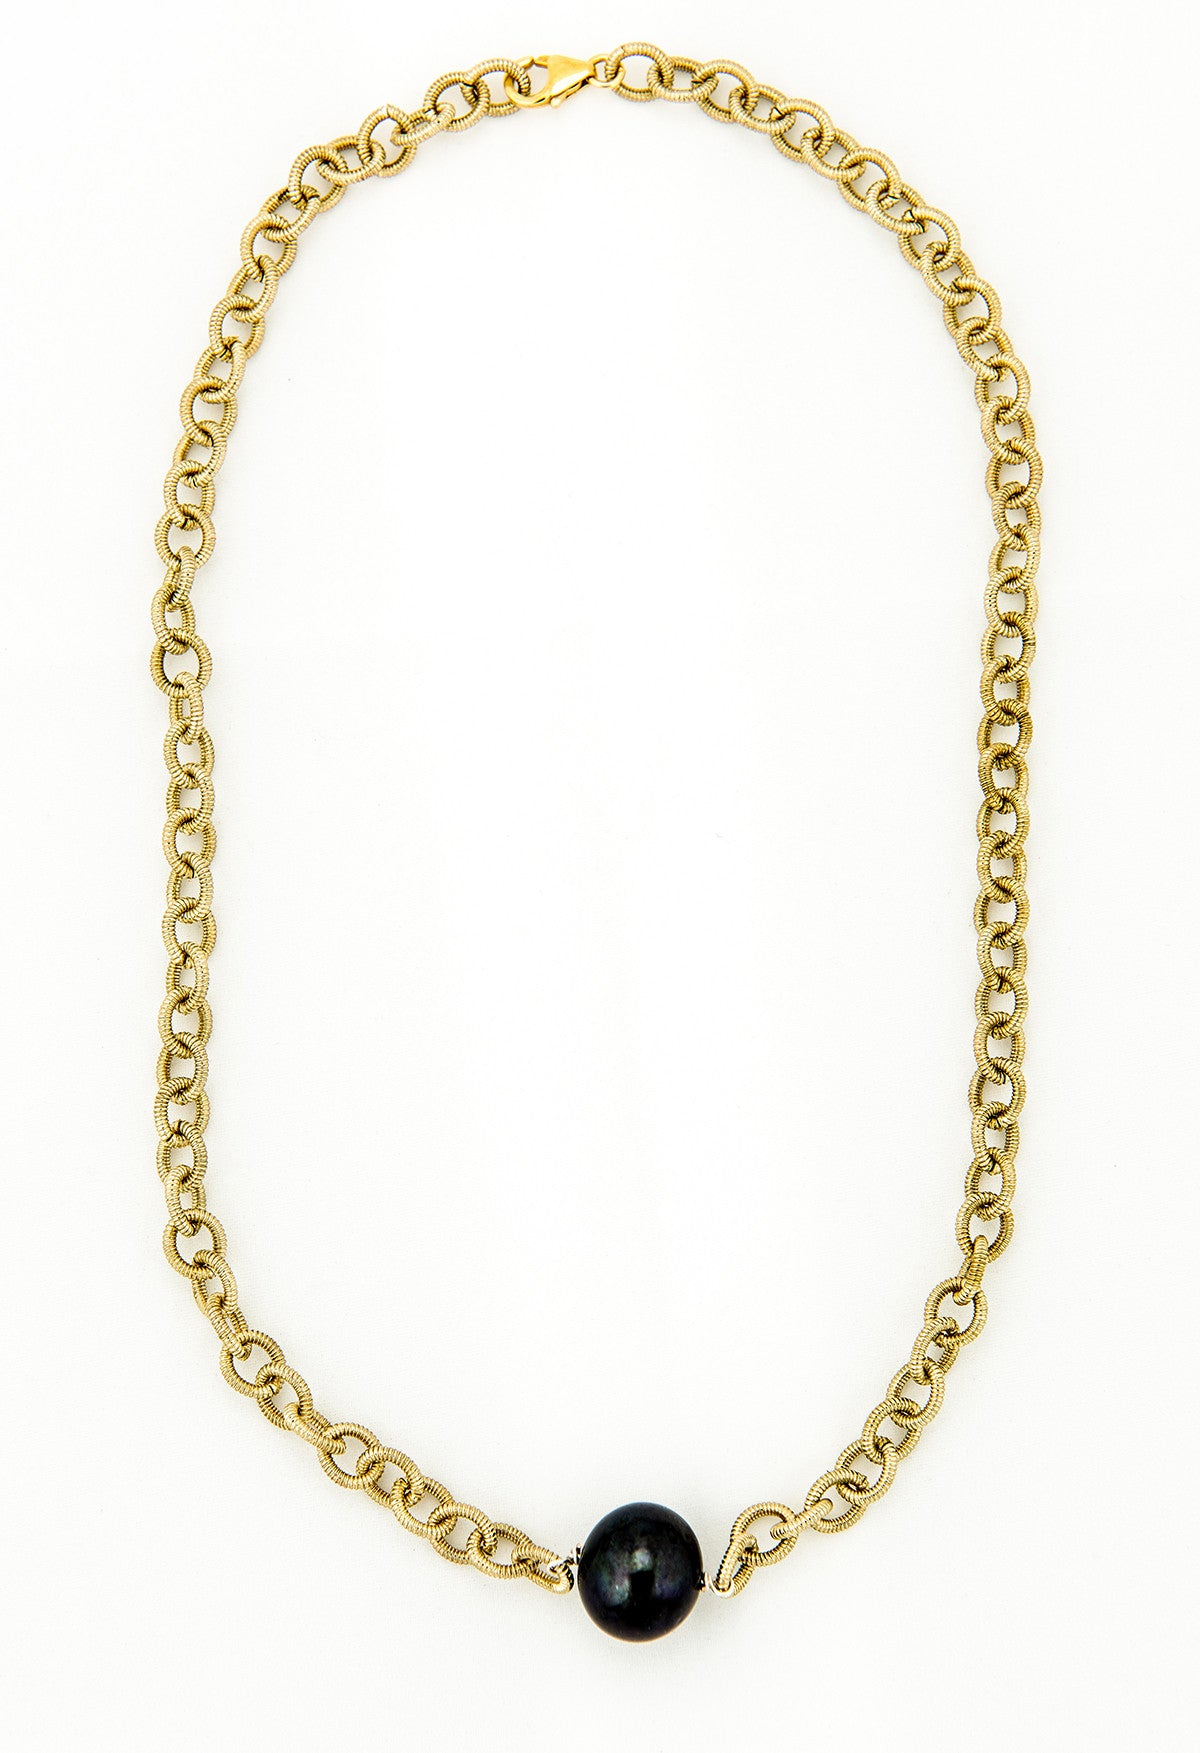 Black Fresh Water Pearl on Gold Chain